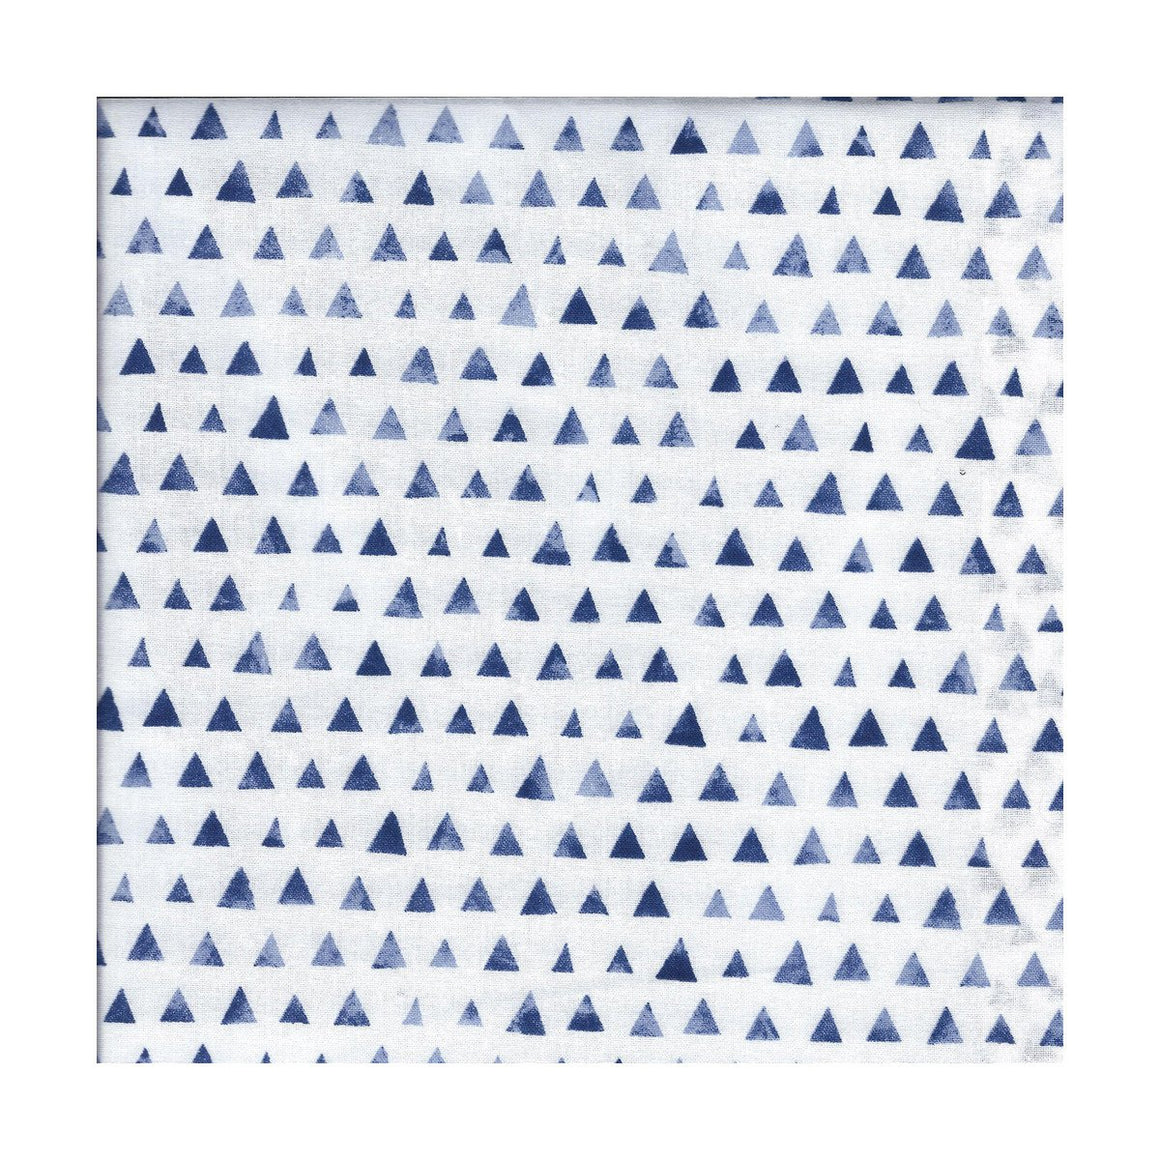 bandana, multi colored, graphic blue triangles on white, exclusive, unique to bazooka bandanas, tenegui, rectangle